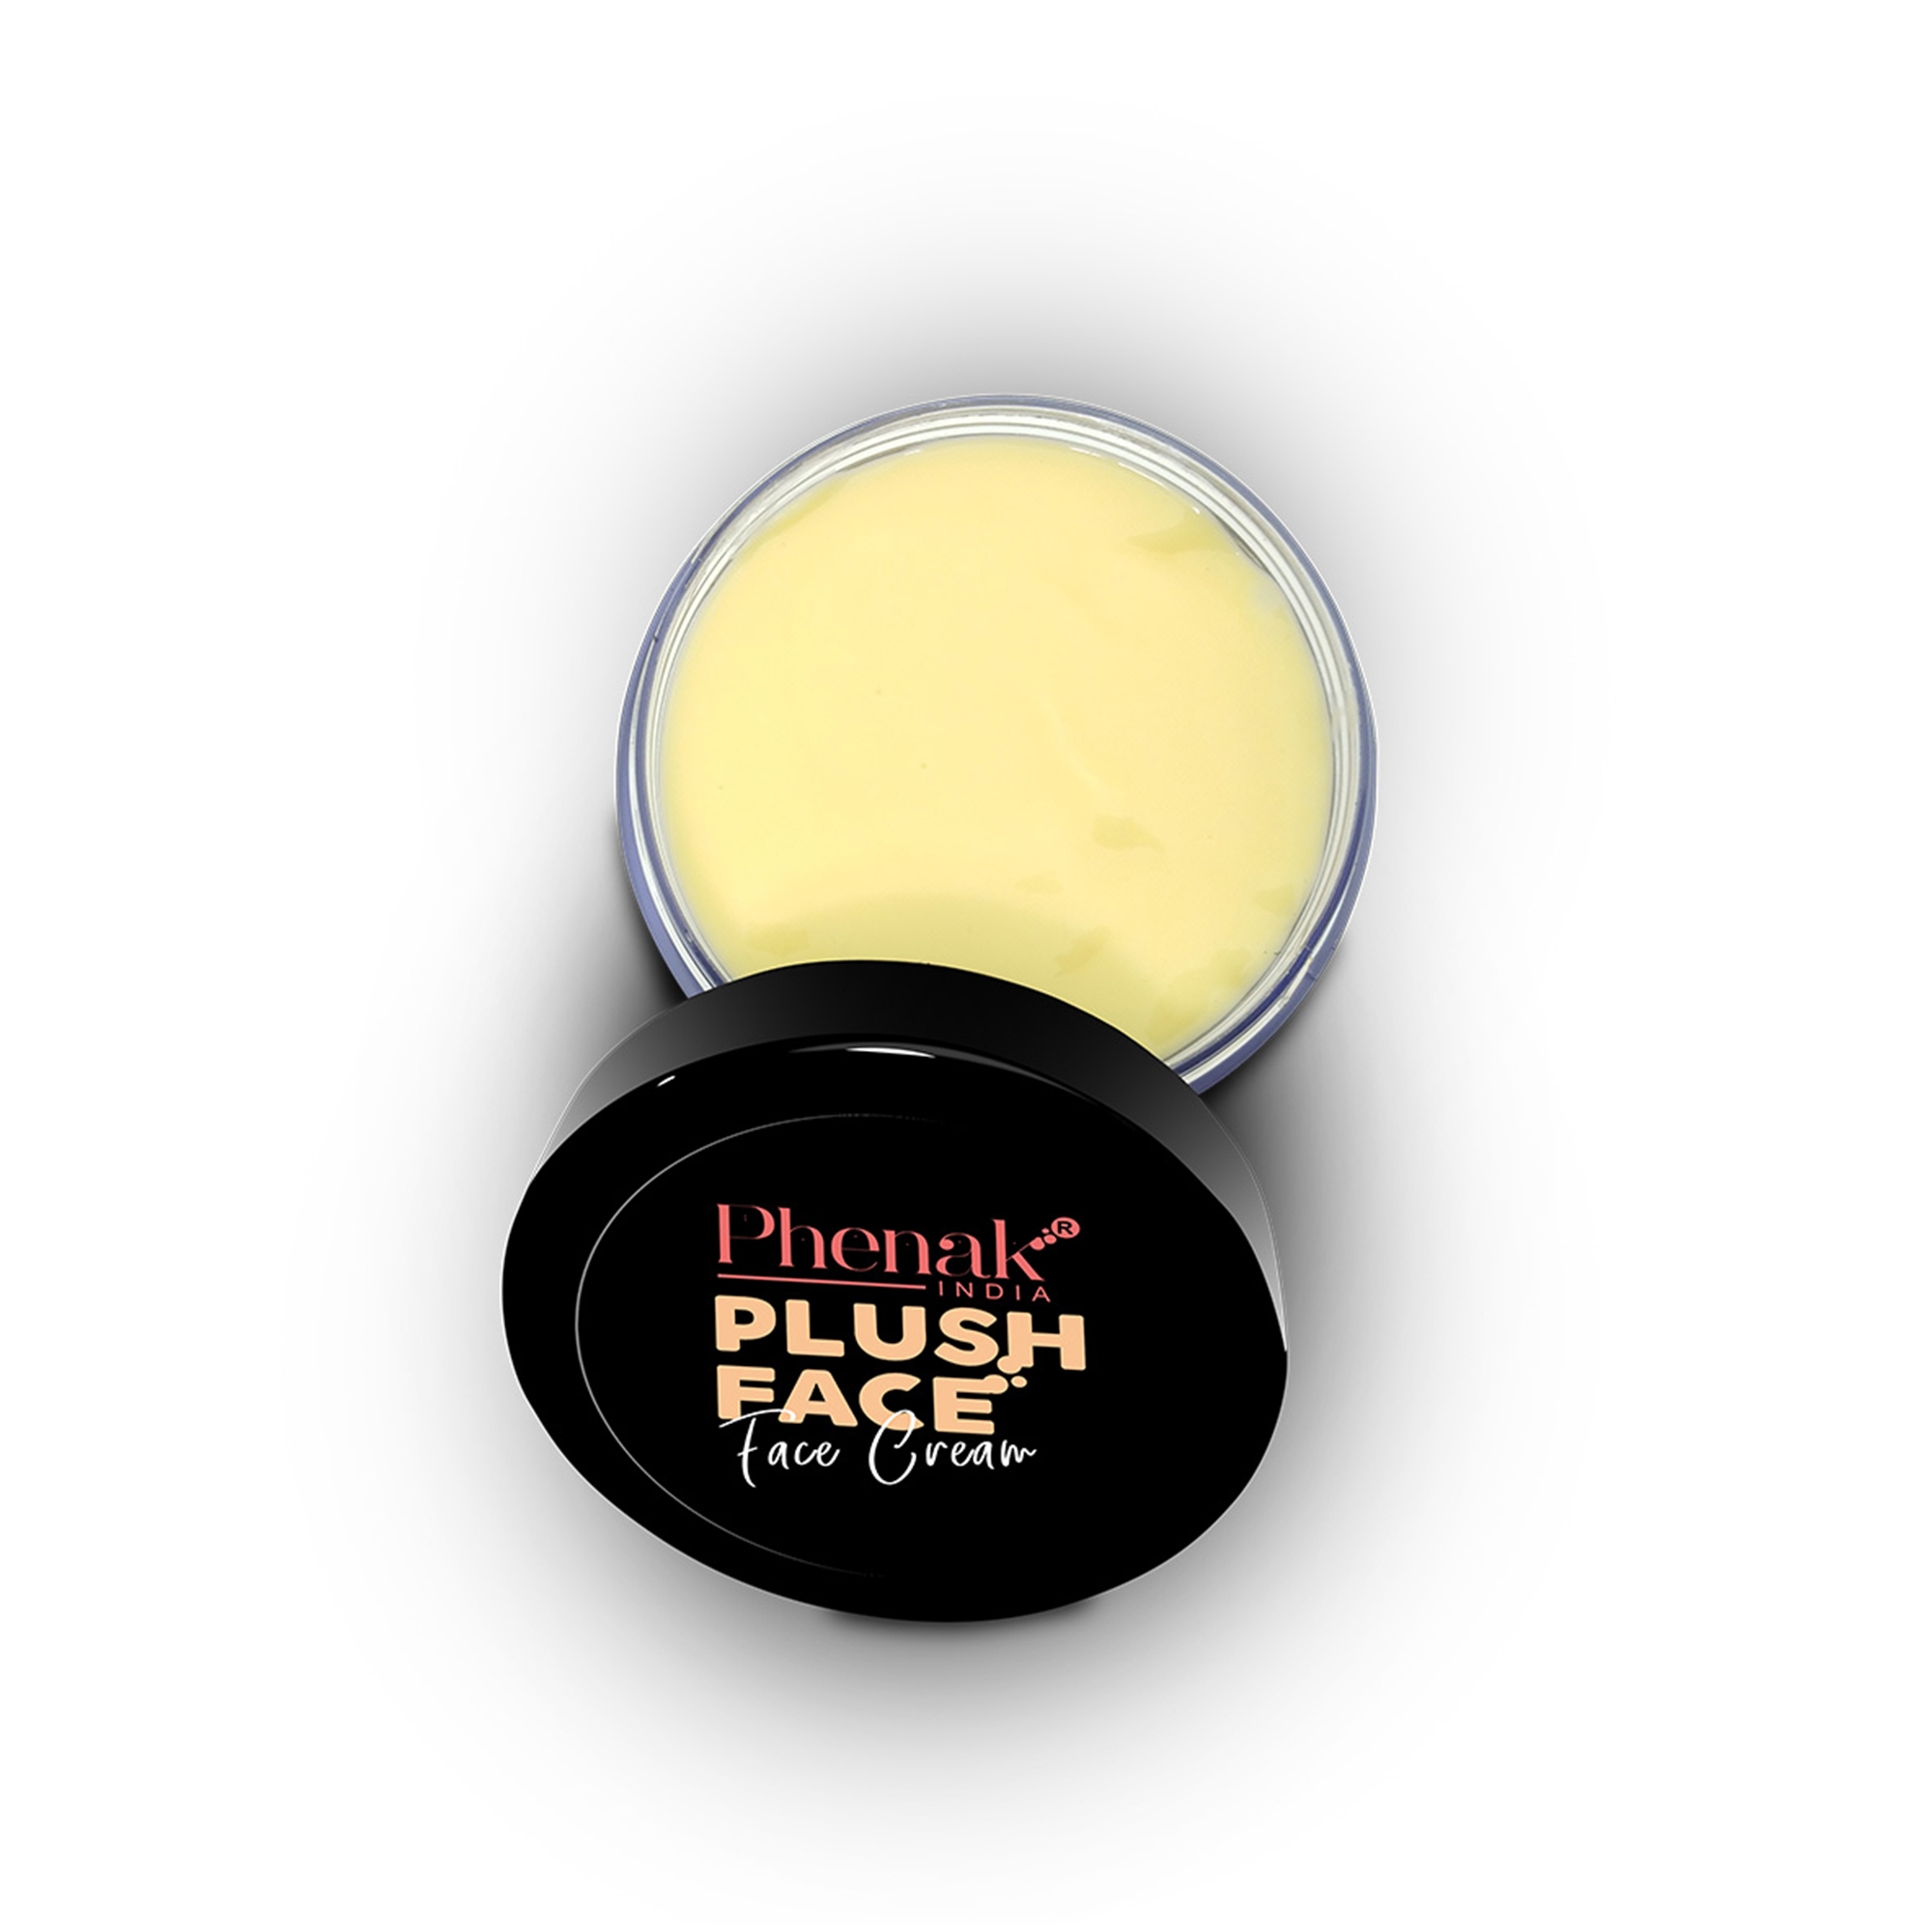 PHENAK INDIA PLUSH FACE CREAM 50gms